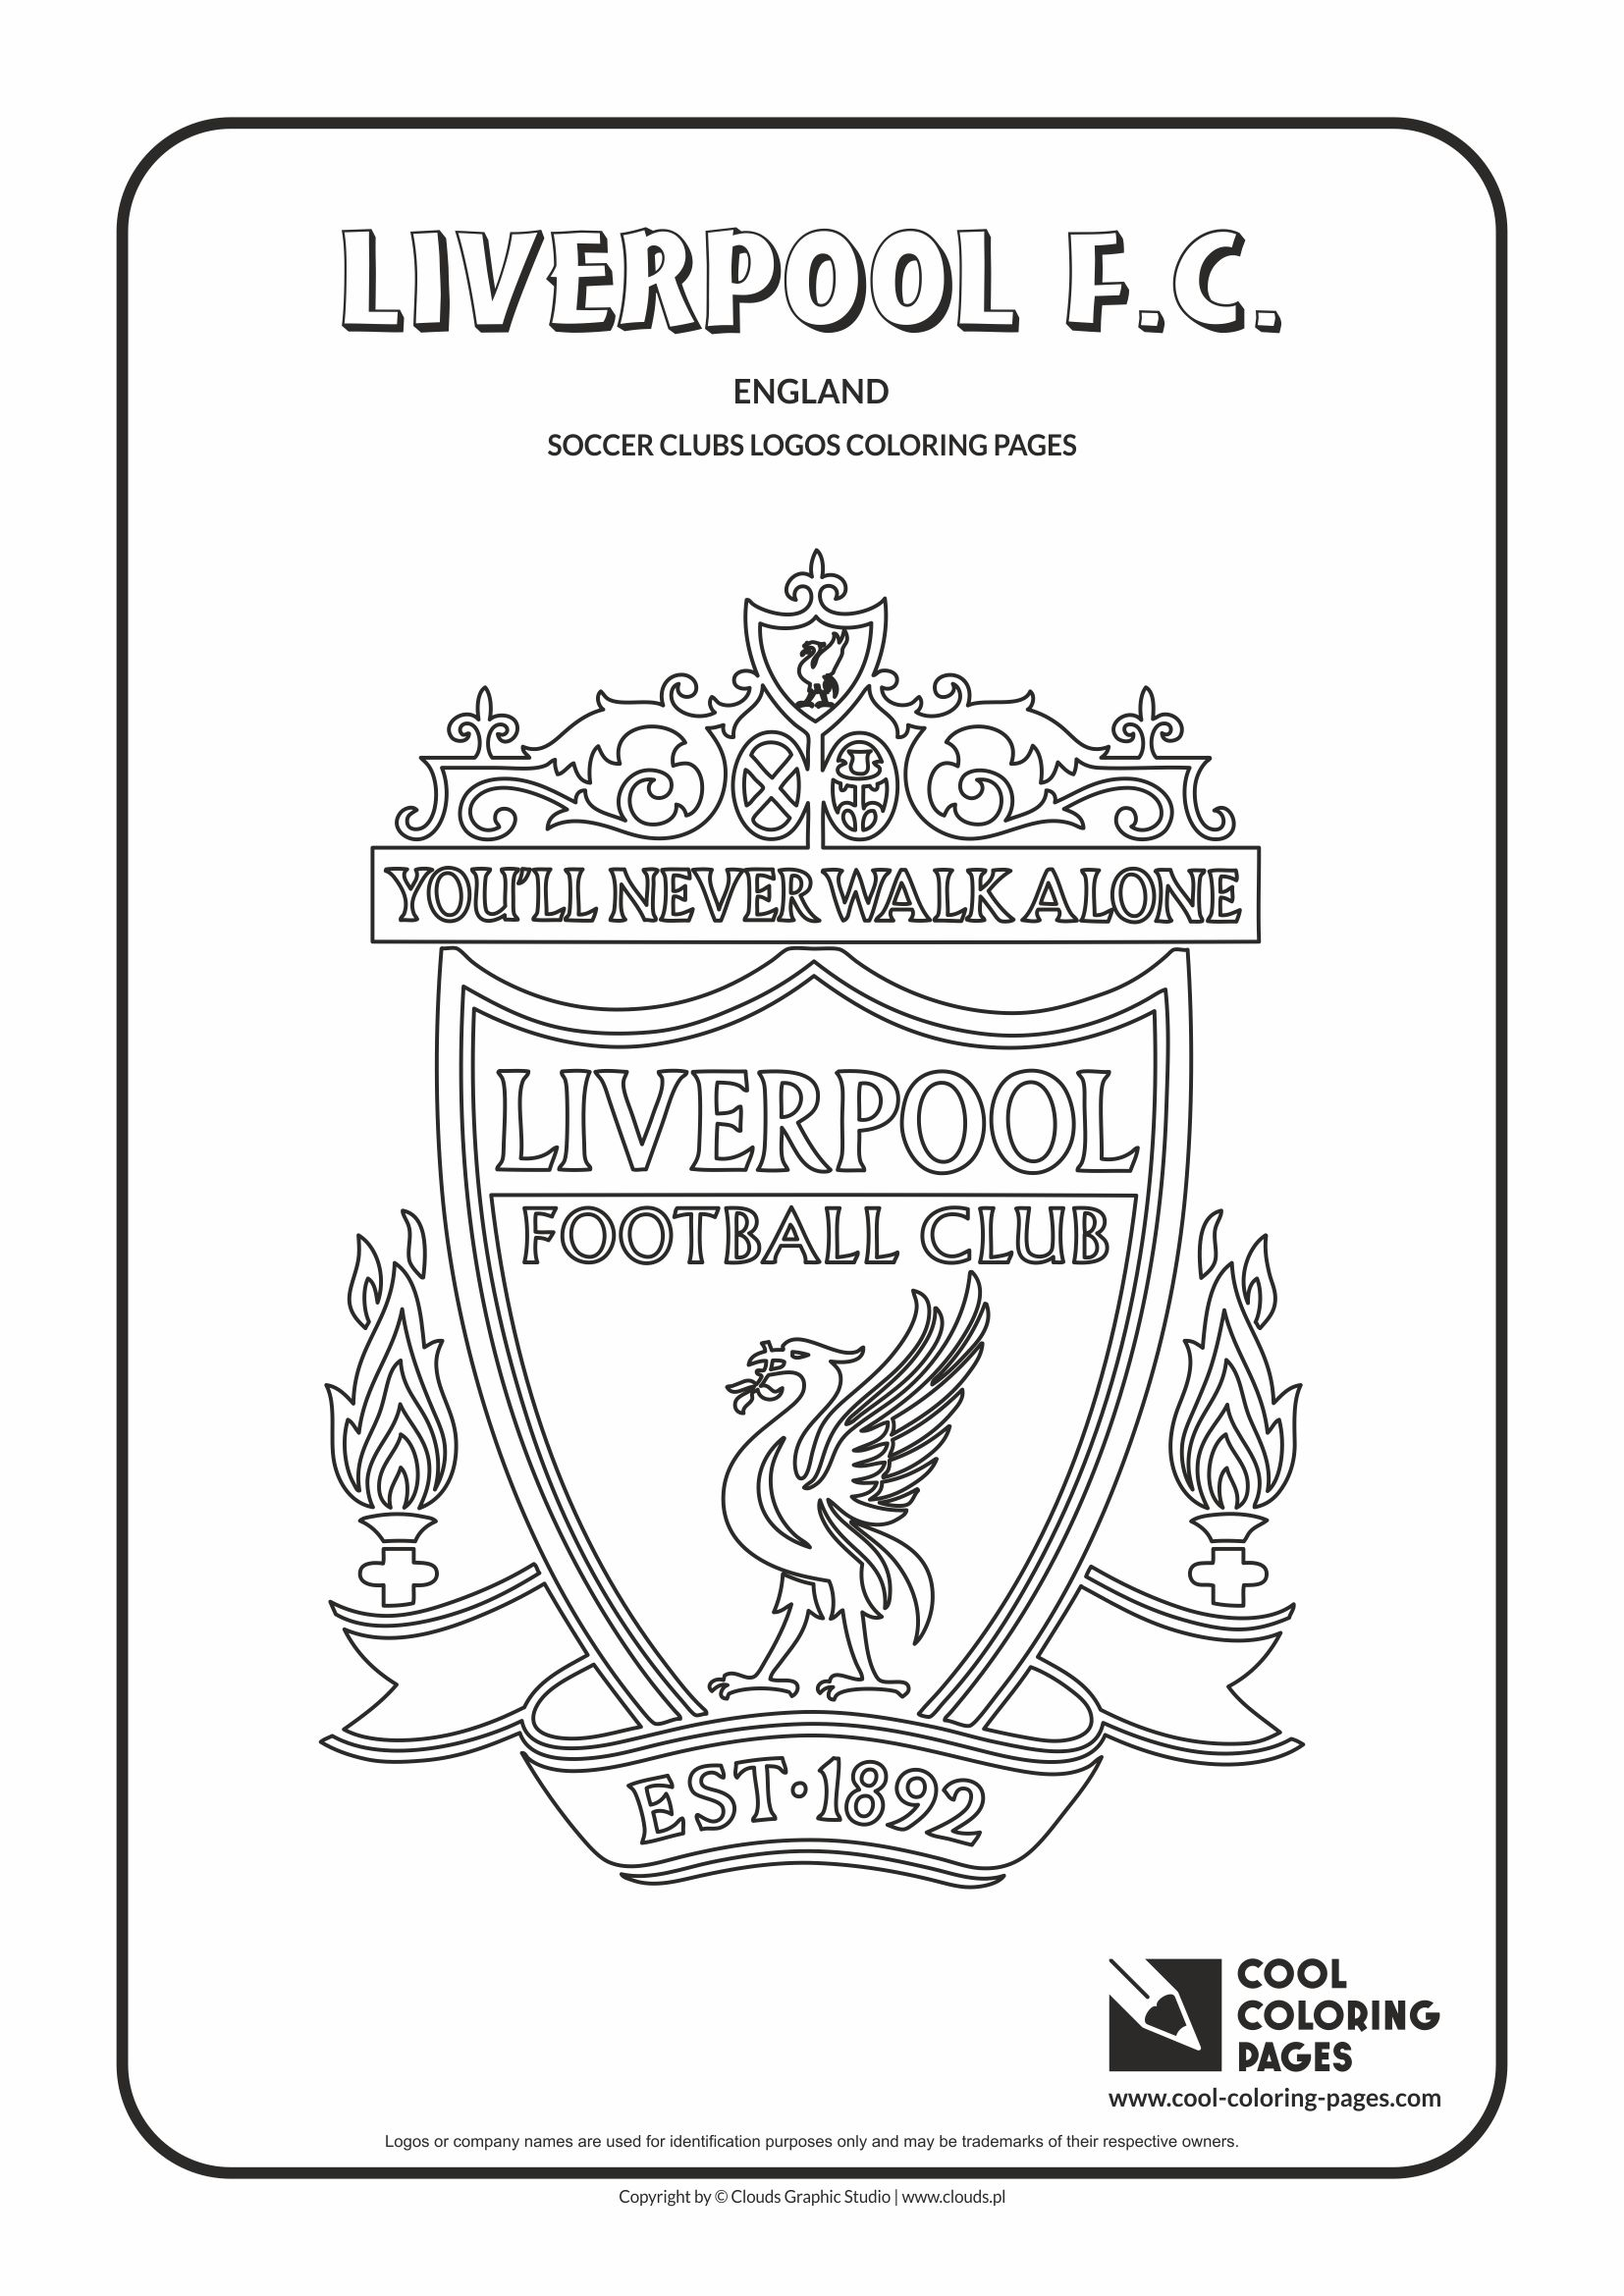 Cool Coloring Pages Liverpool F.C. logo coloring page - Cool ...